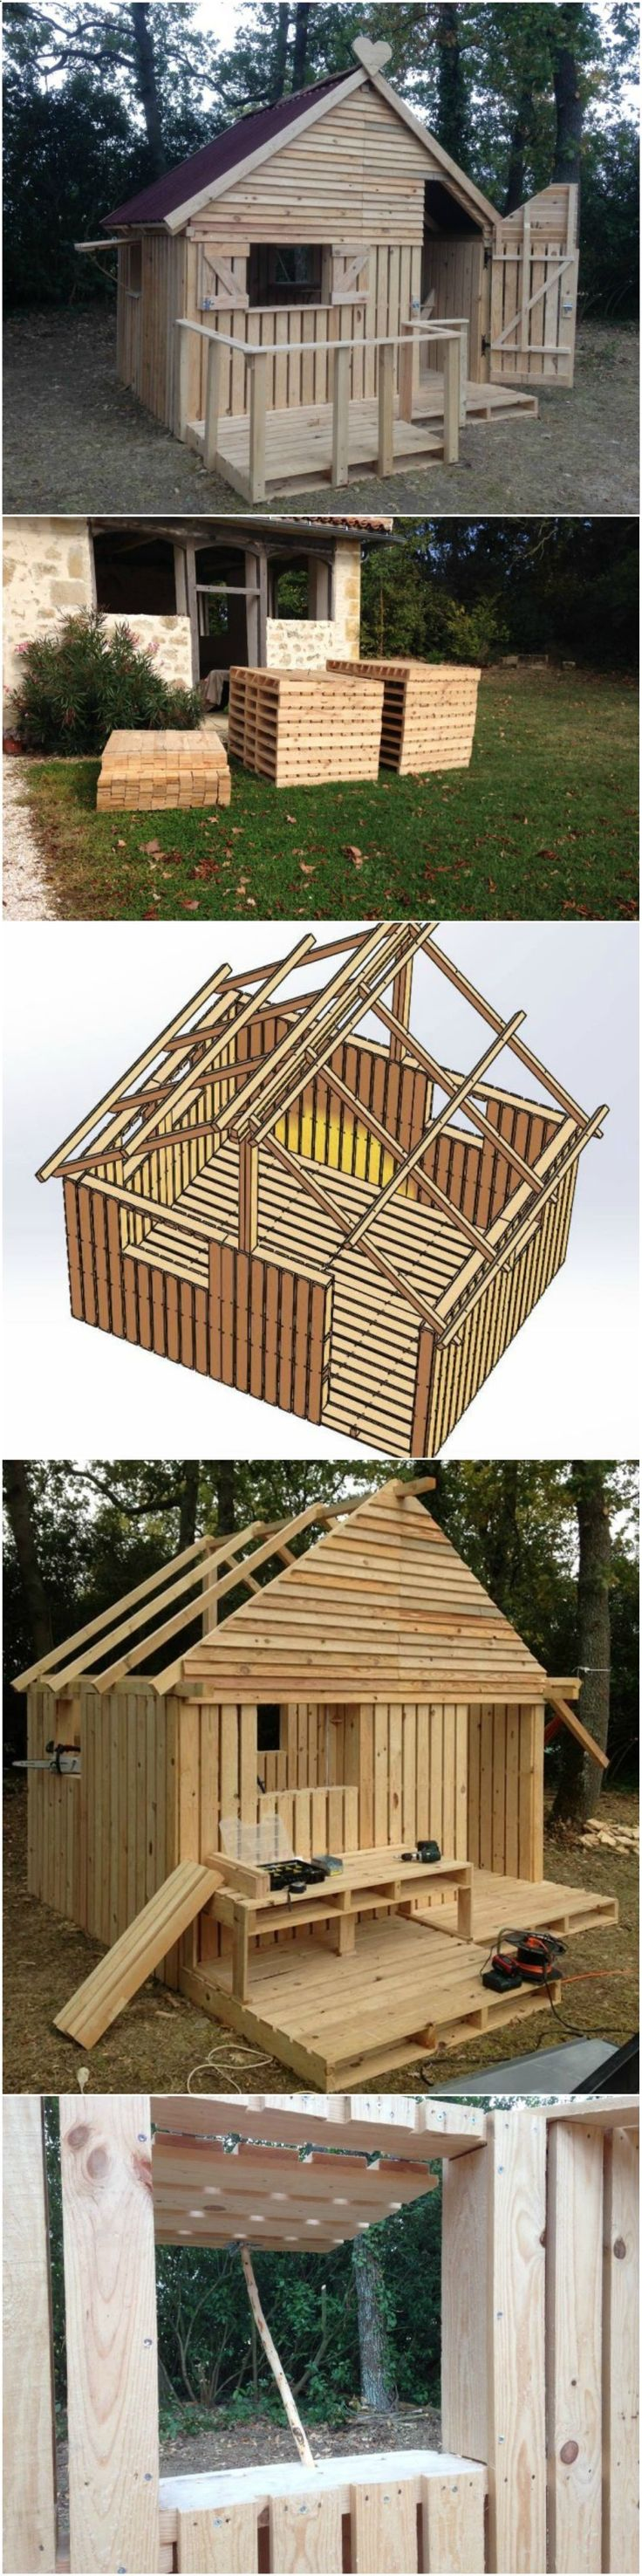 Amazing Shed Plans DIY Pallet Hideout